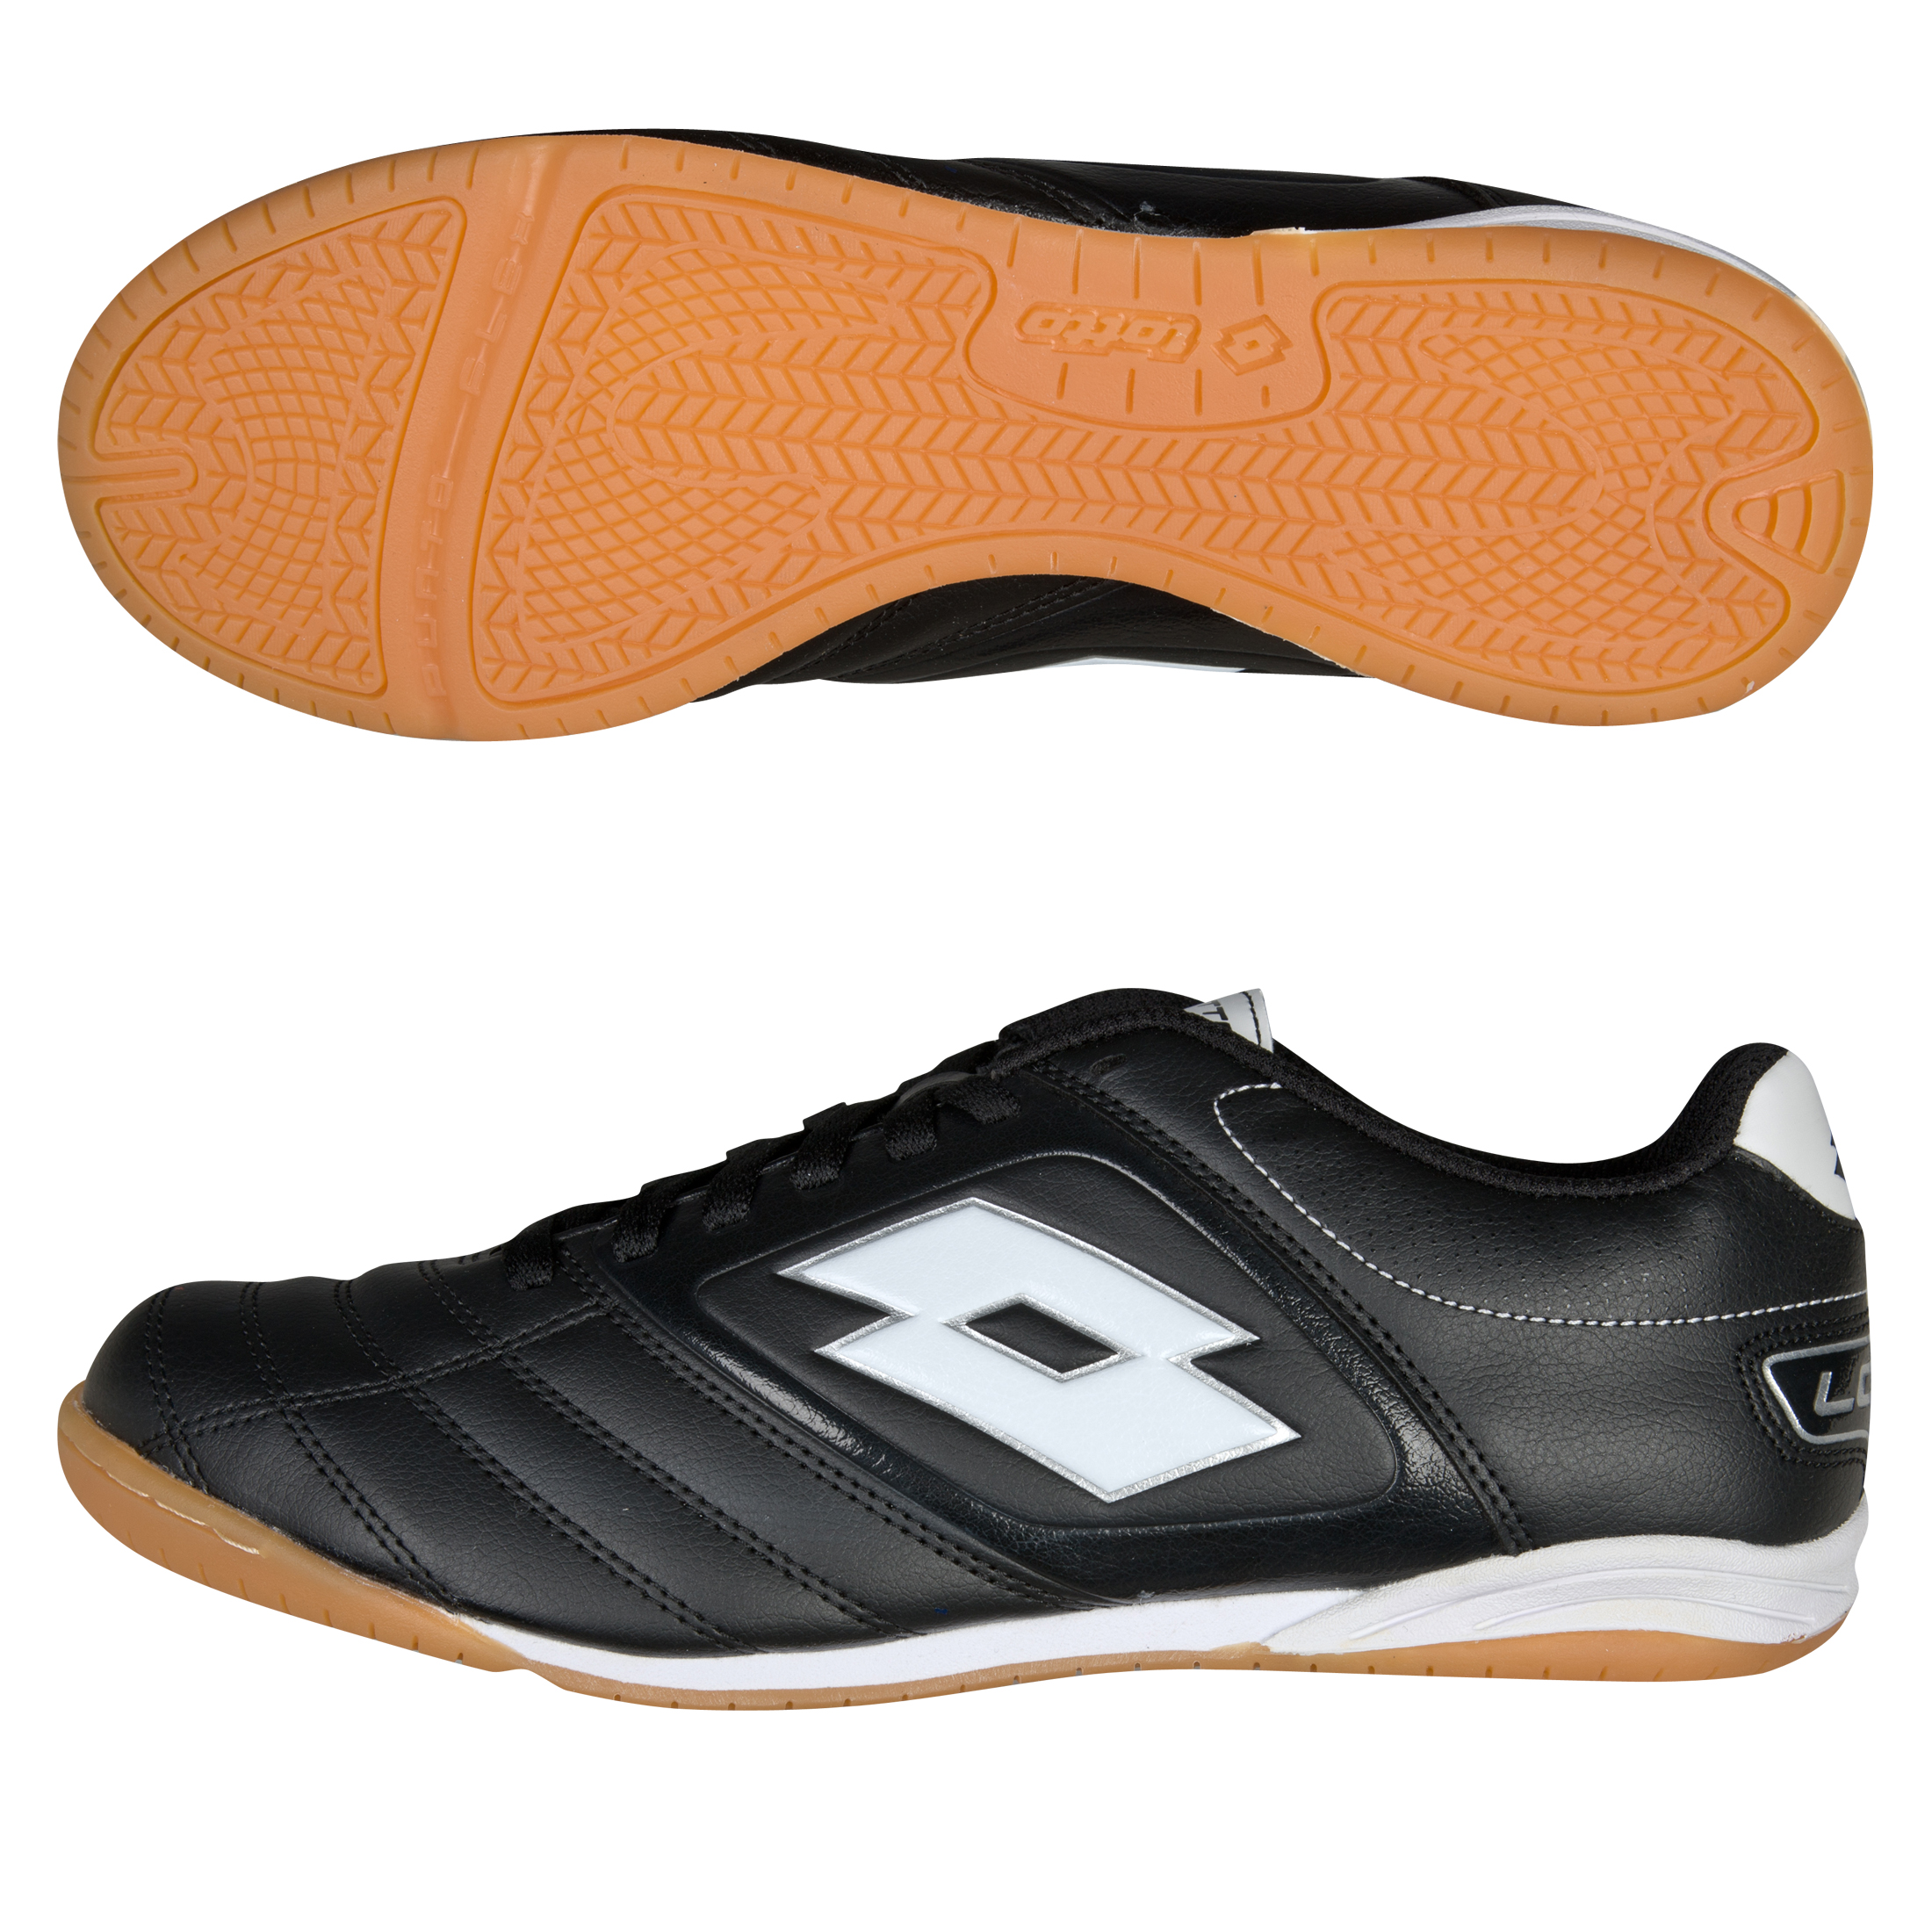 Lotto Stadio Potenza 500 Indoor Futsal Trainers - Black/White